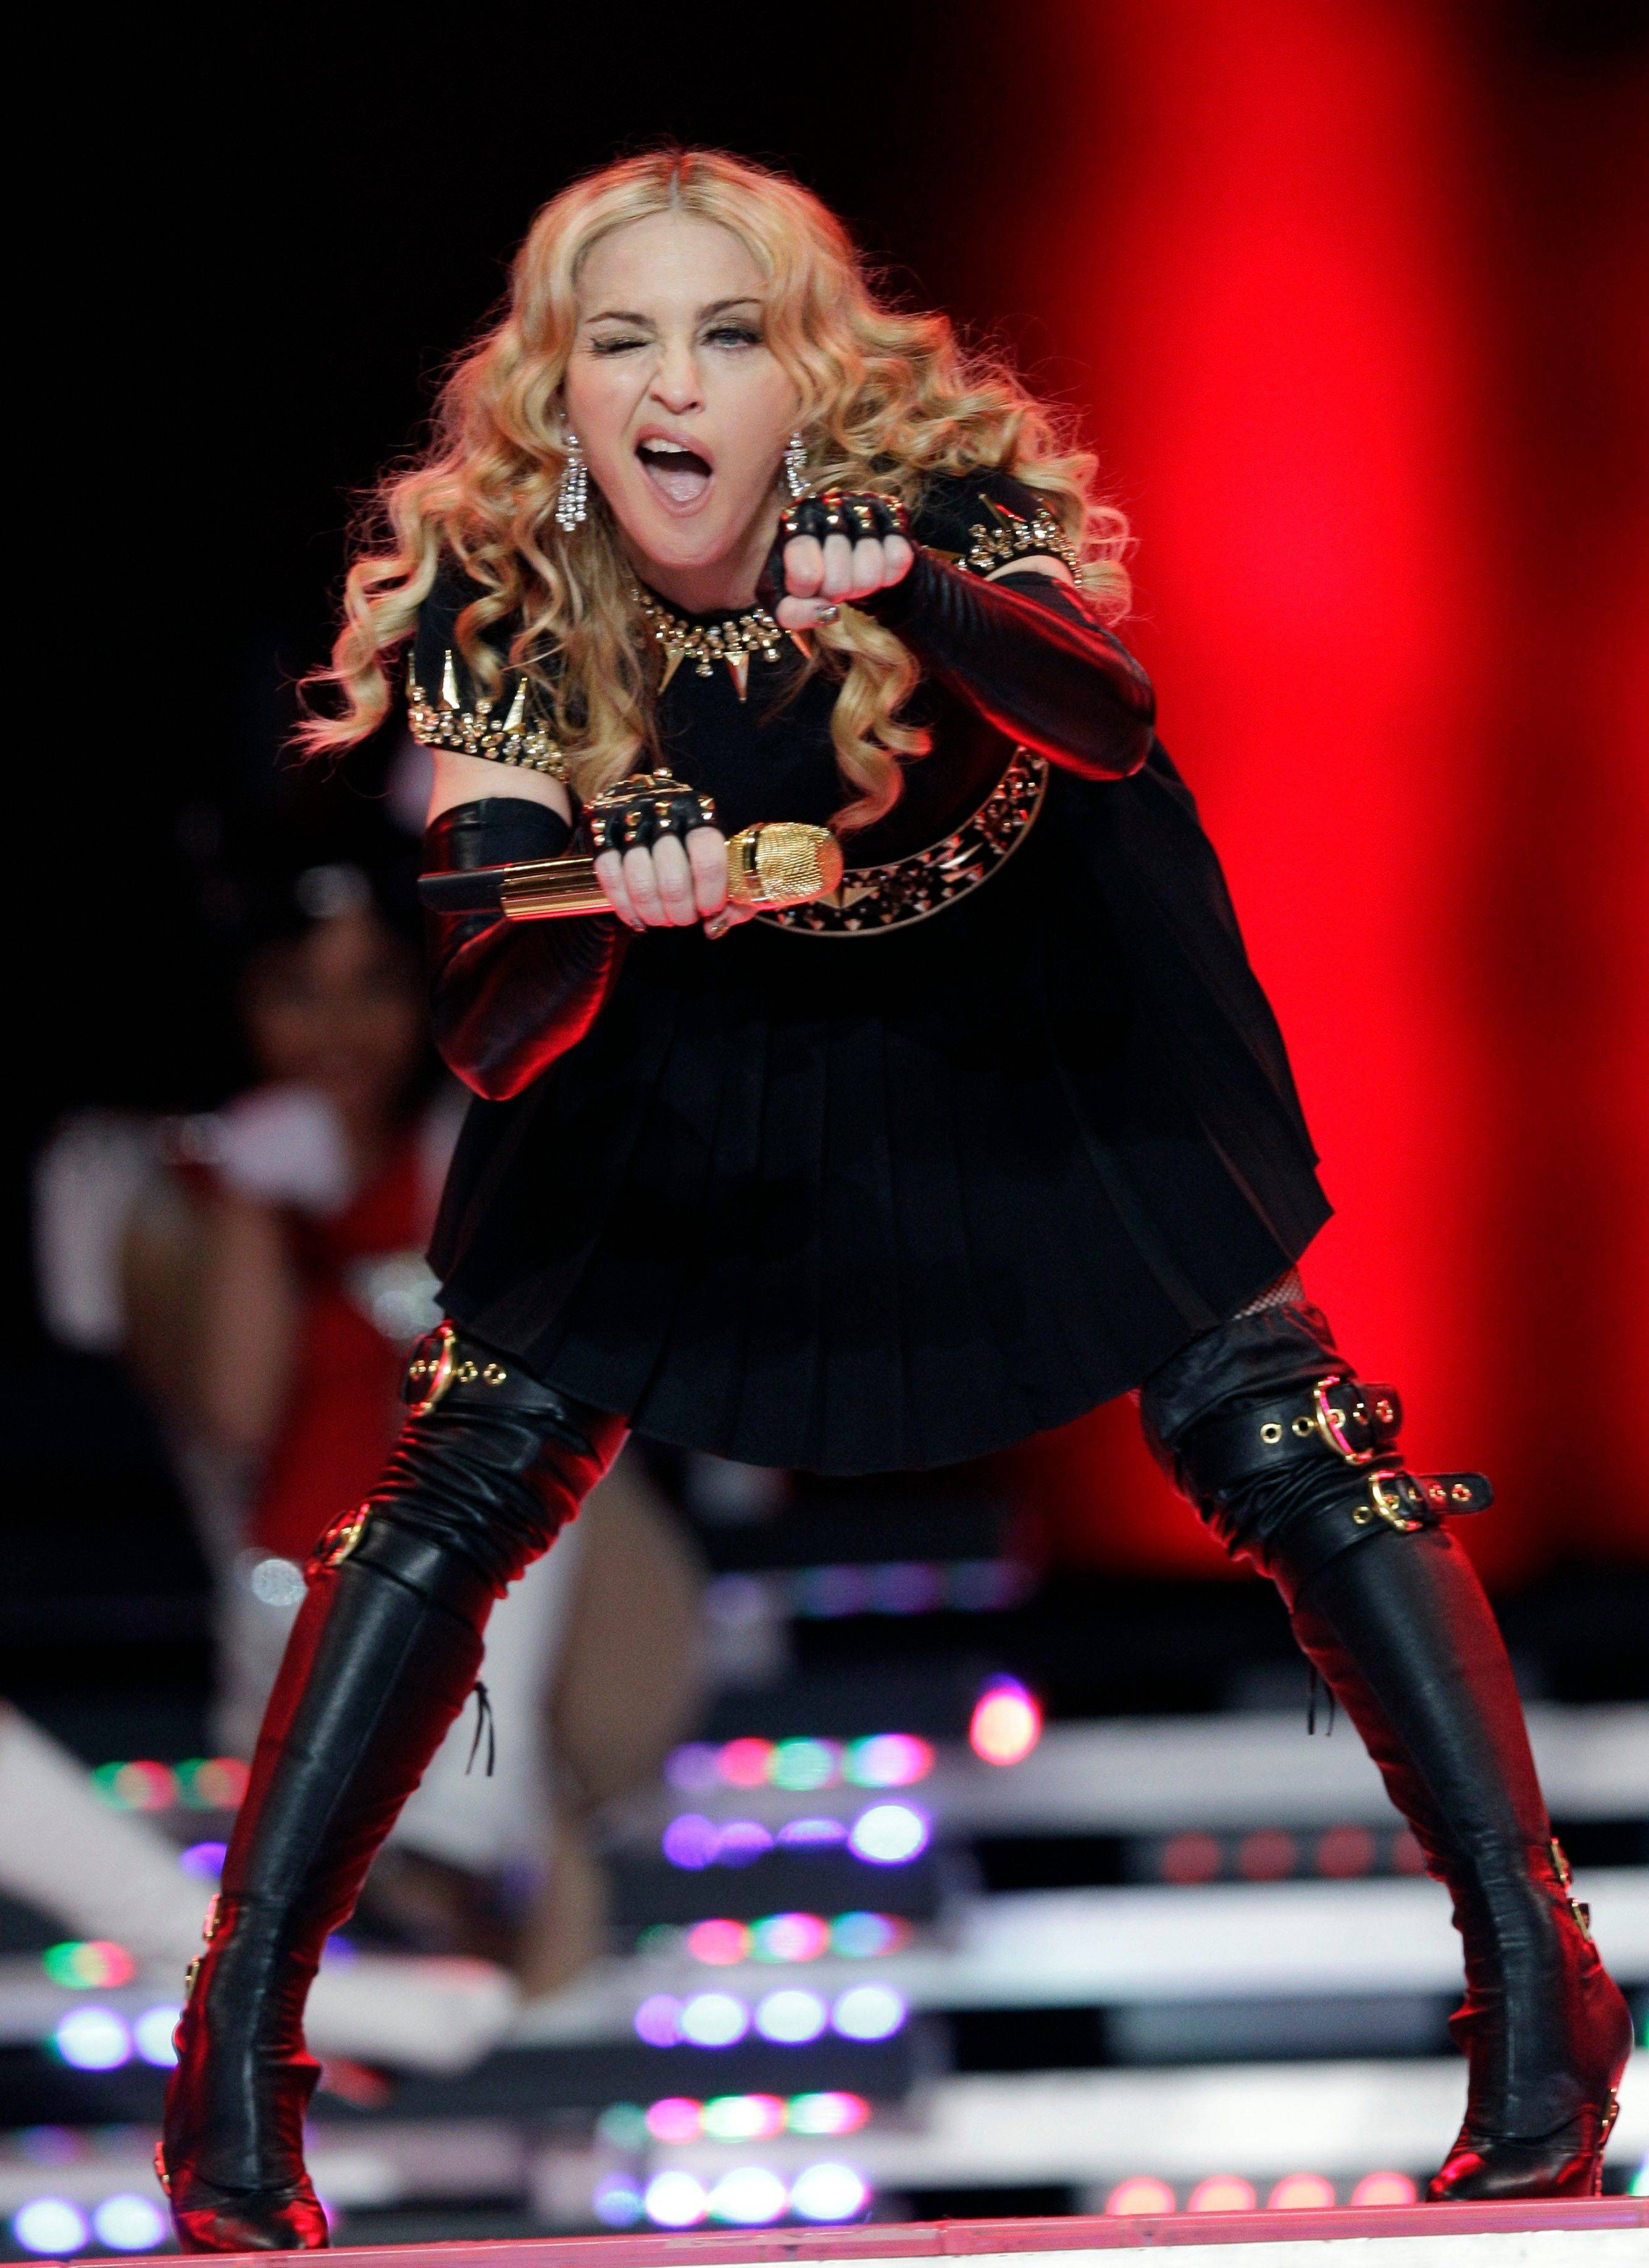 Madonna performs during halftime of the NFL Super Bowl XLVI football game.